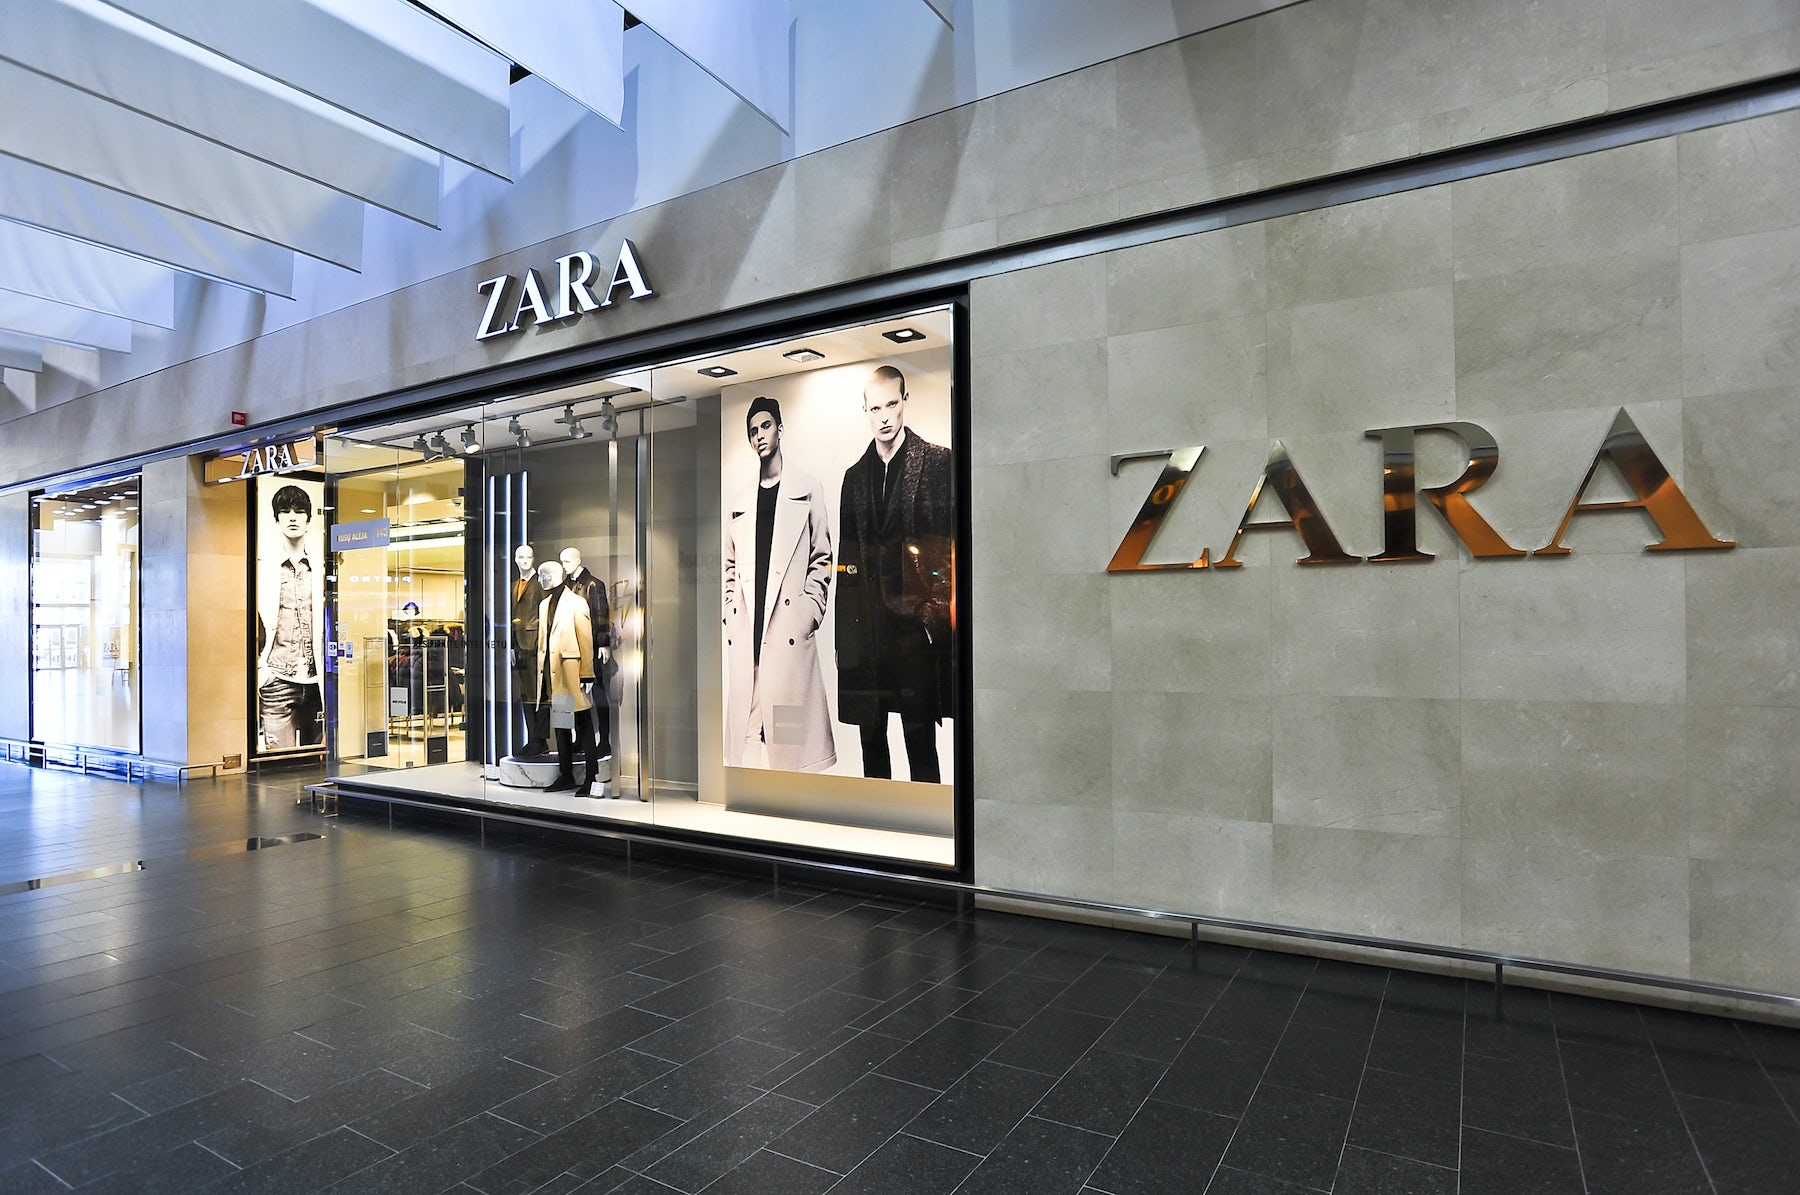 Spain's Zara leans less on its home country for profit, more on its citizens for jobs